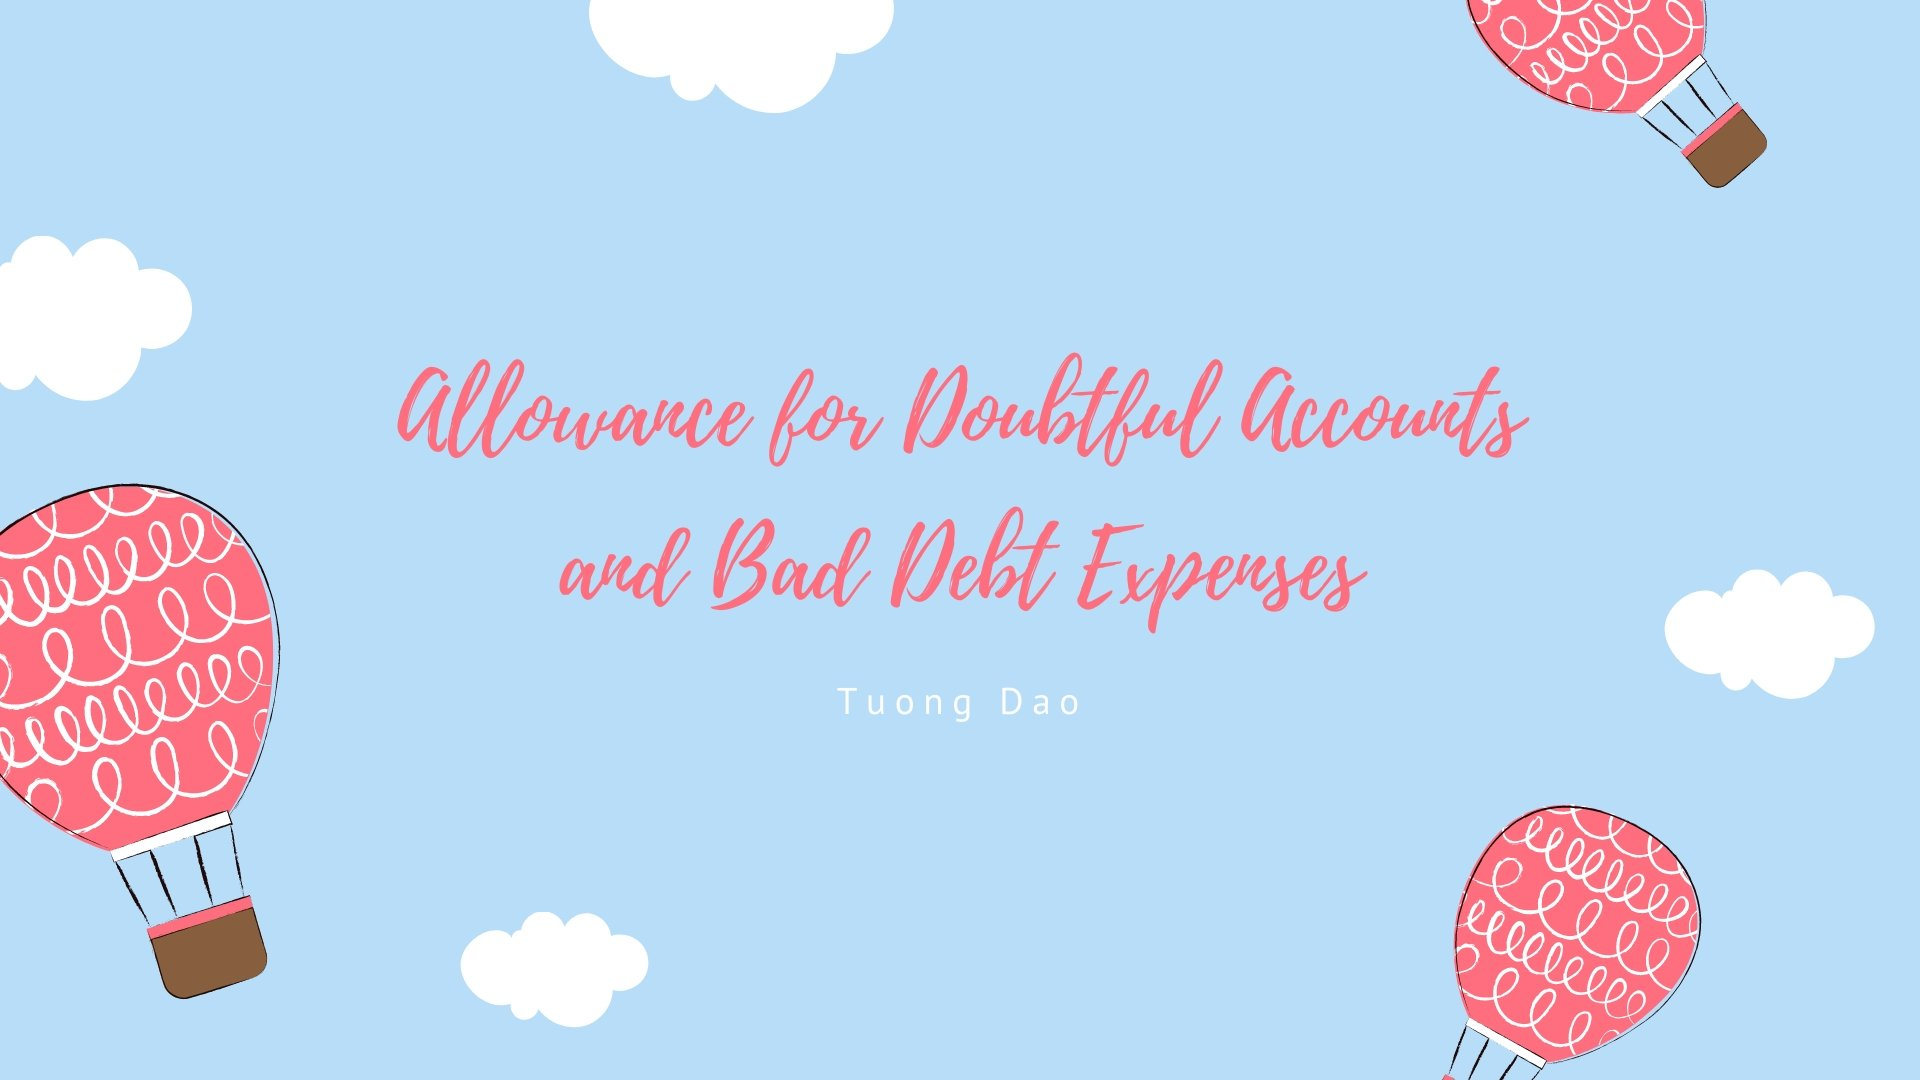 Bad Debt Expenses and Allowance for Doubtful Accounts